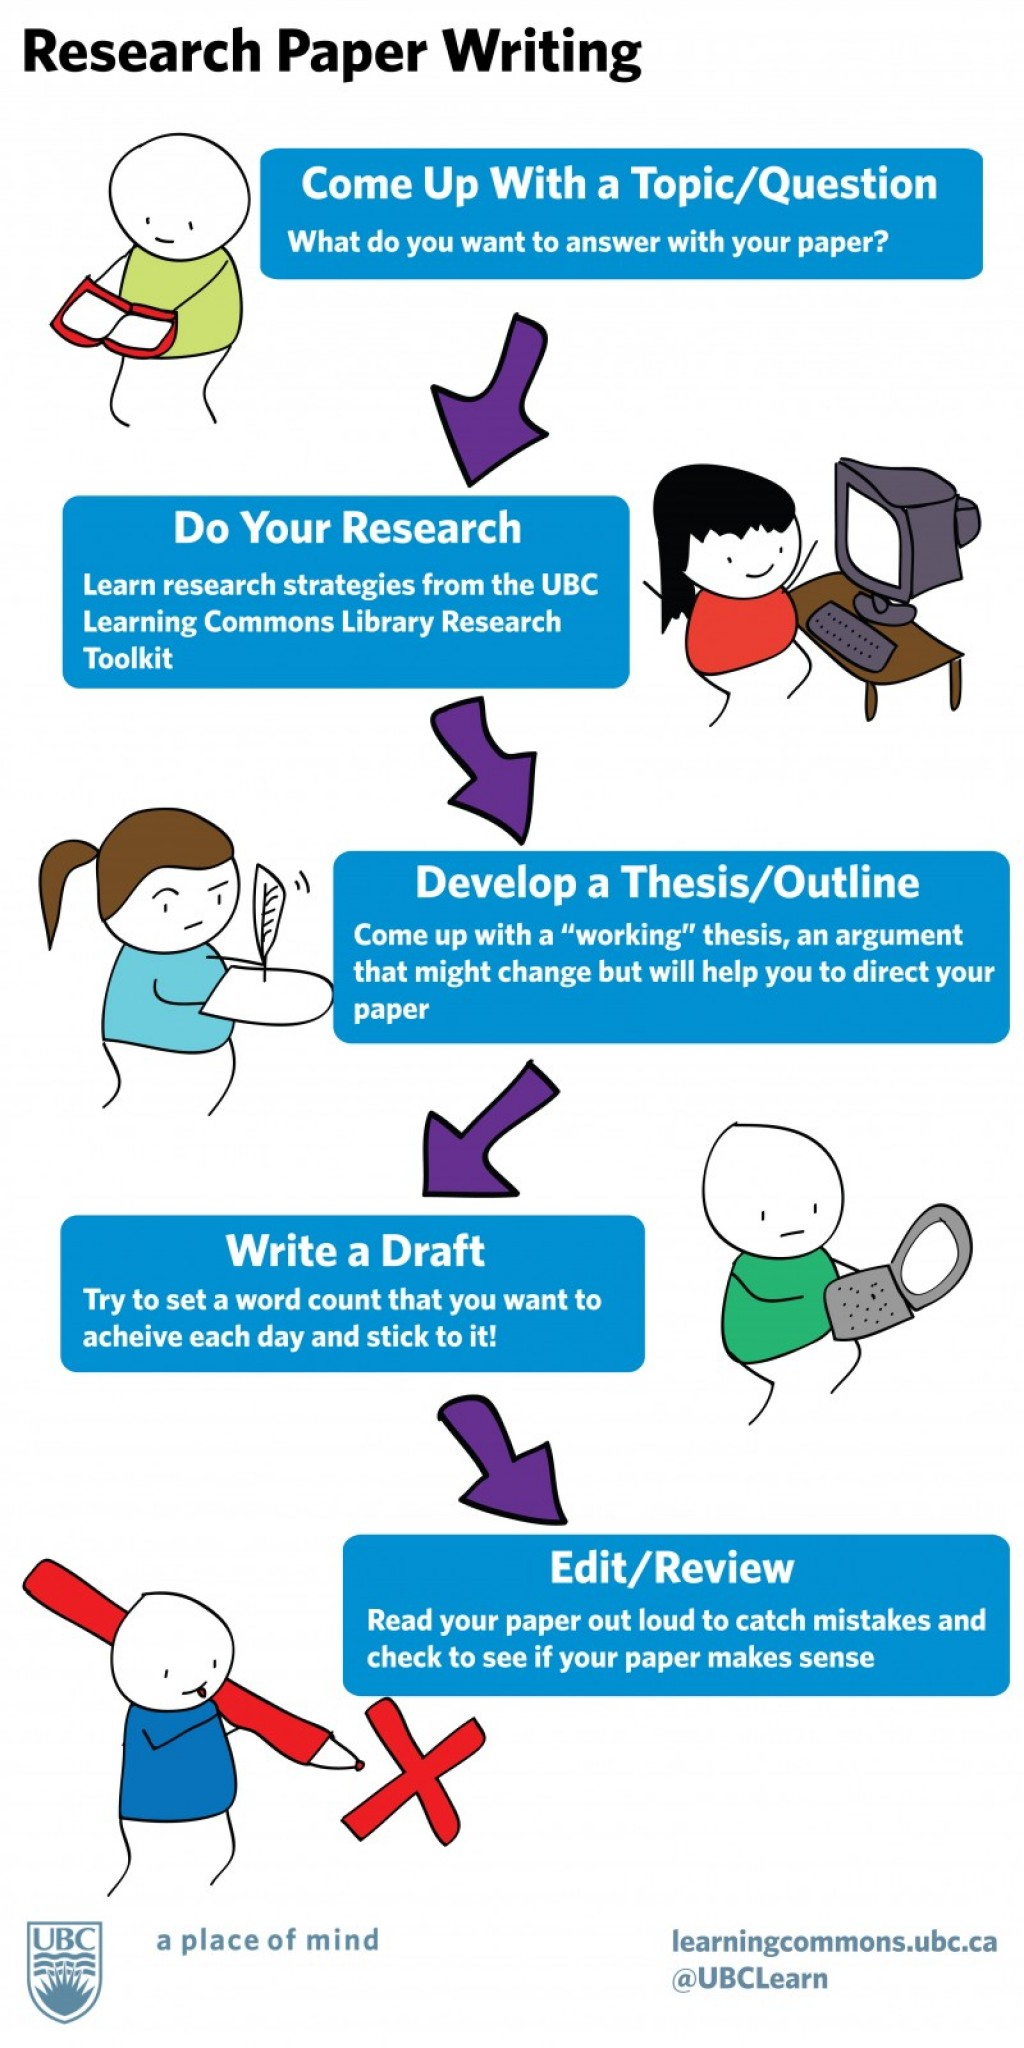 027 Writing Toolkit Infographic Free Download Researchs On Education Stunning Research Papers Large